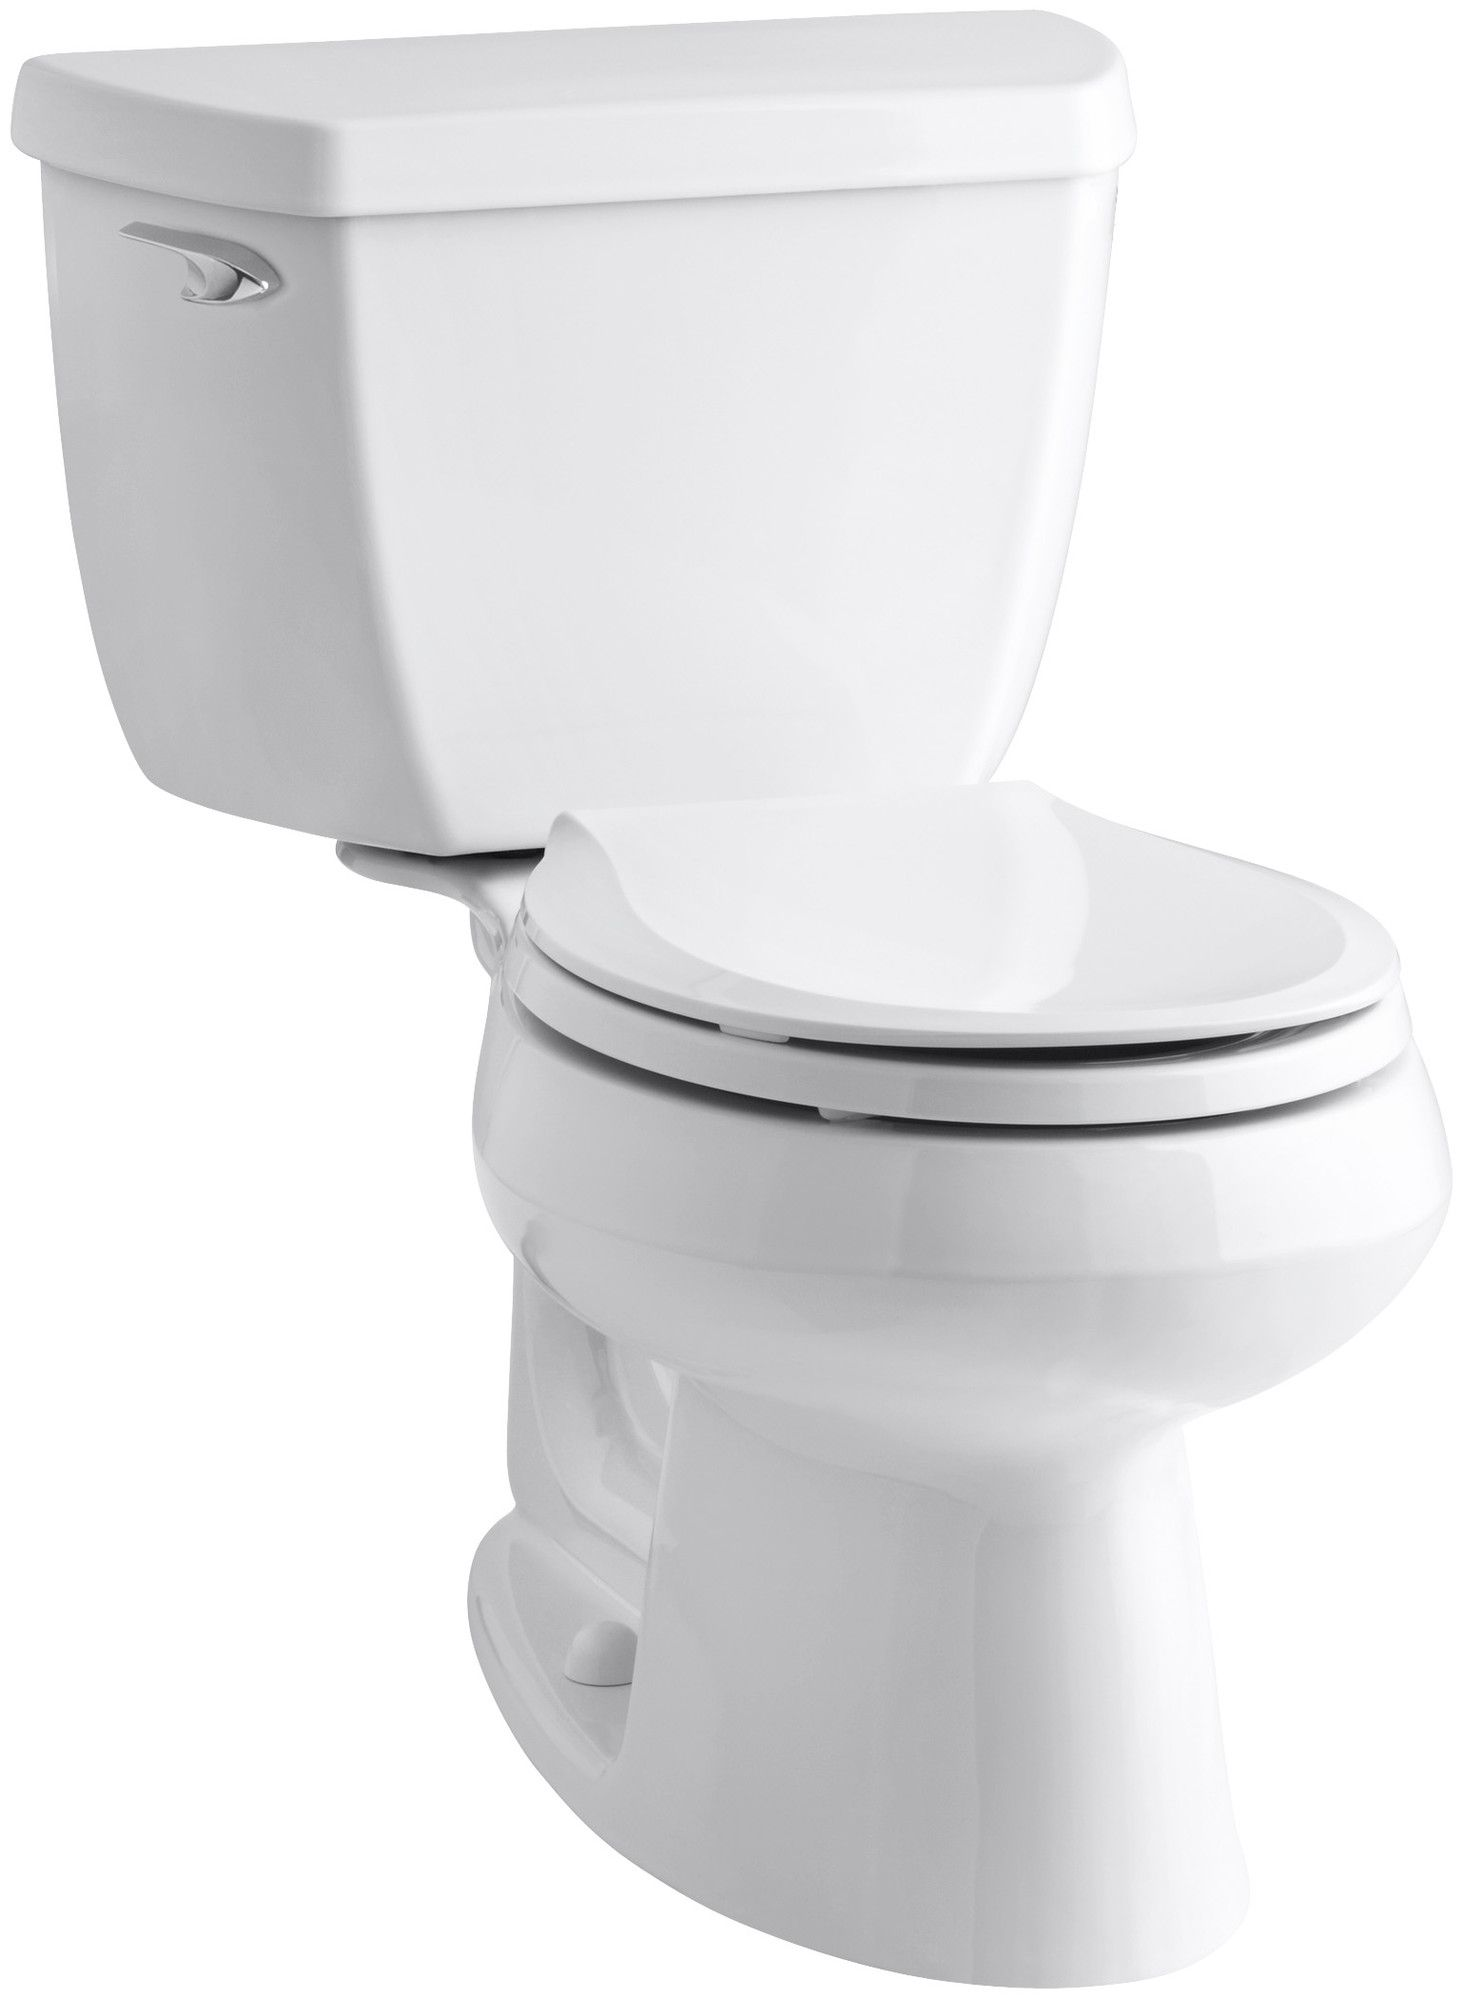 Wellworth Classic Two Piece Round Front 1 28 GPF Toilet with Class